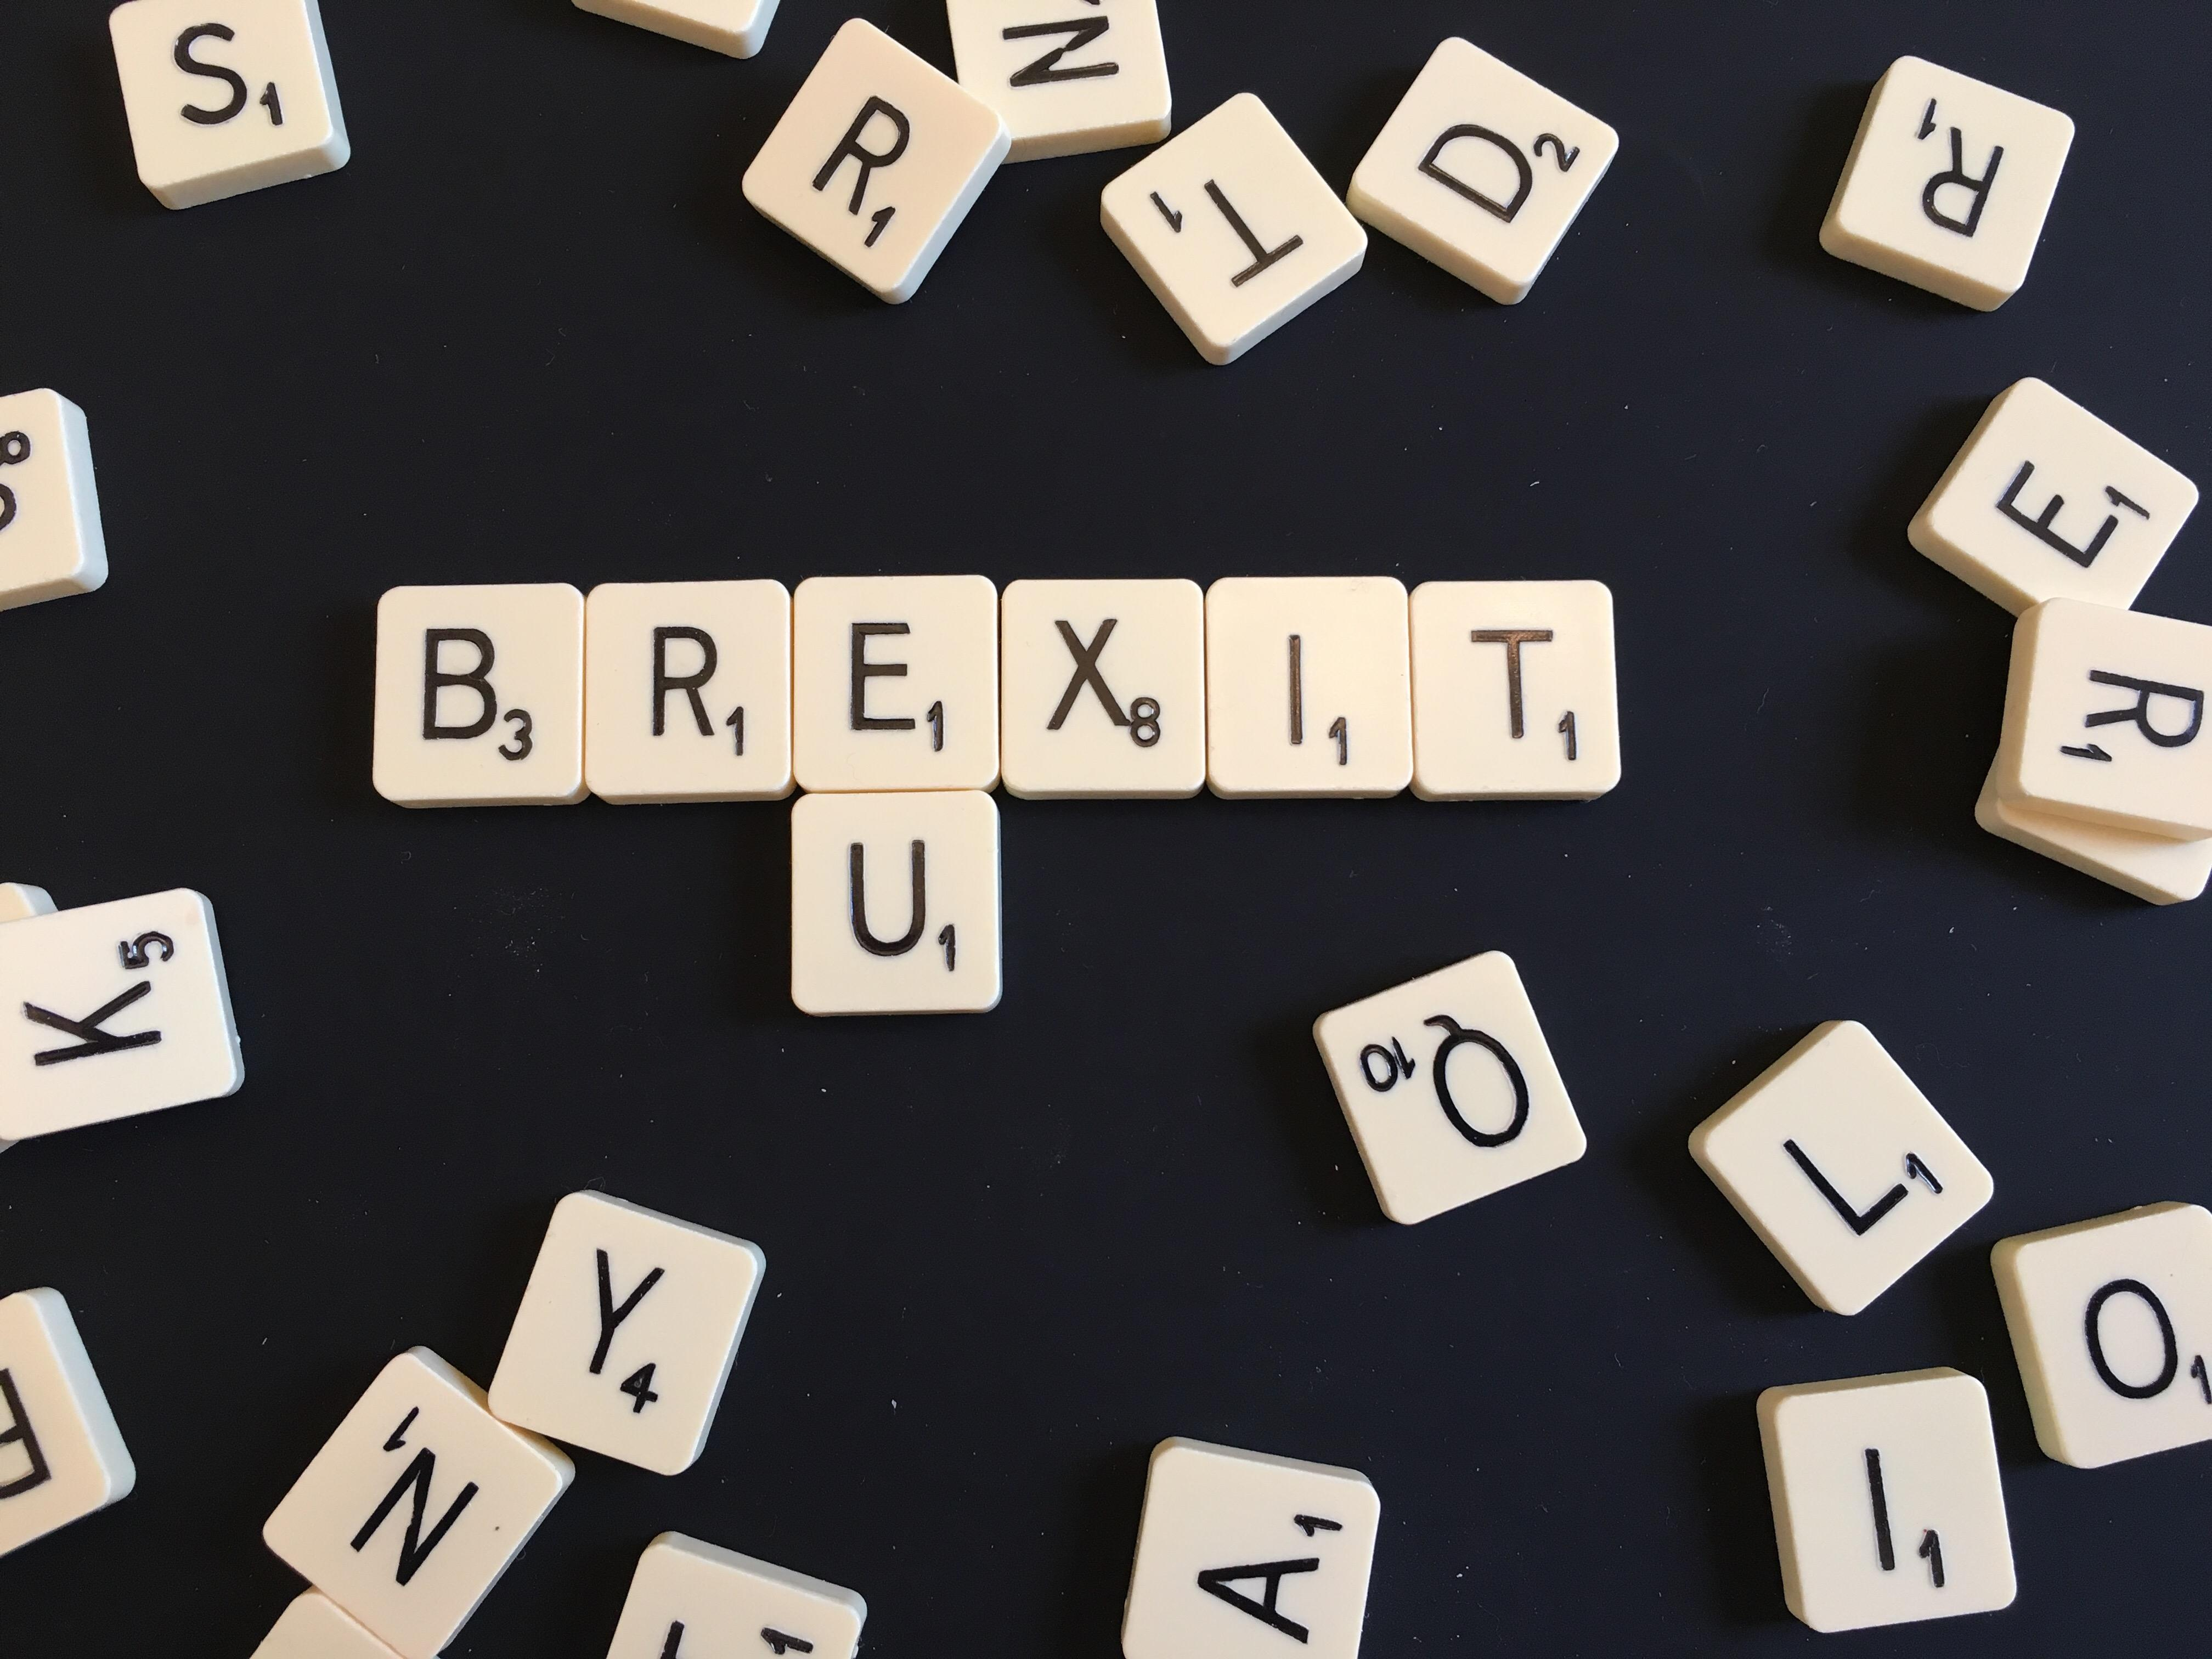 More than 2.5 million people sign petition to cancel Brexit